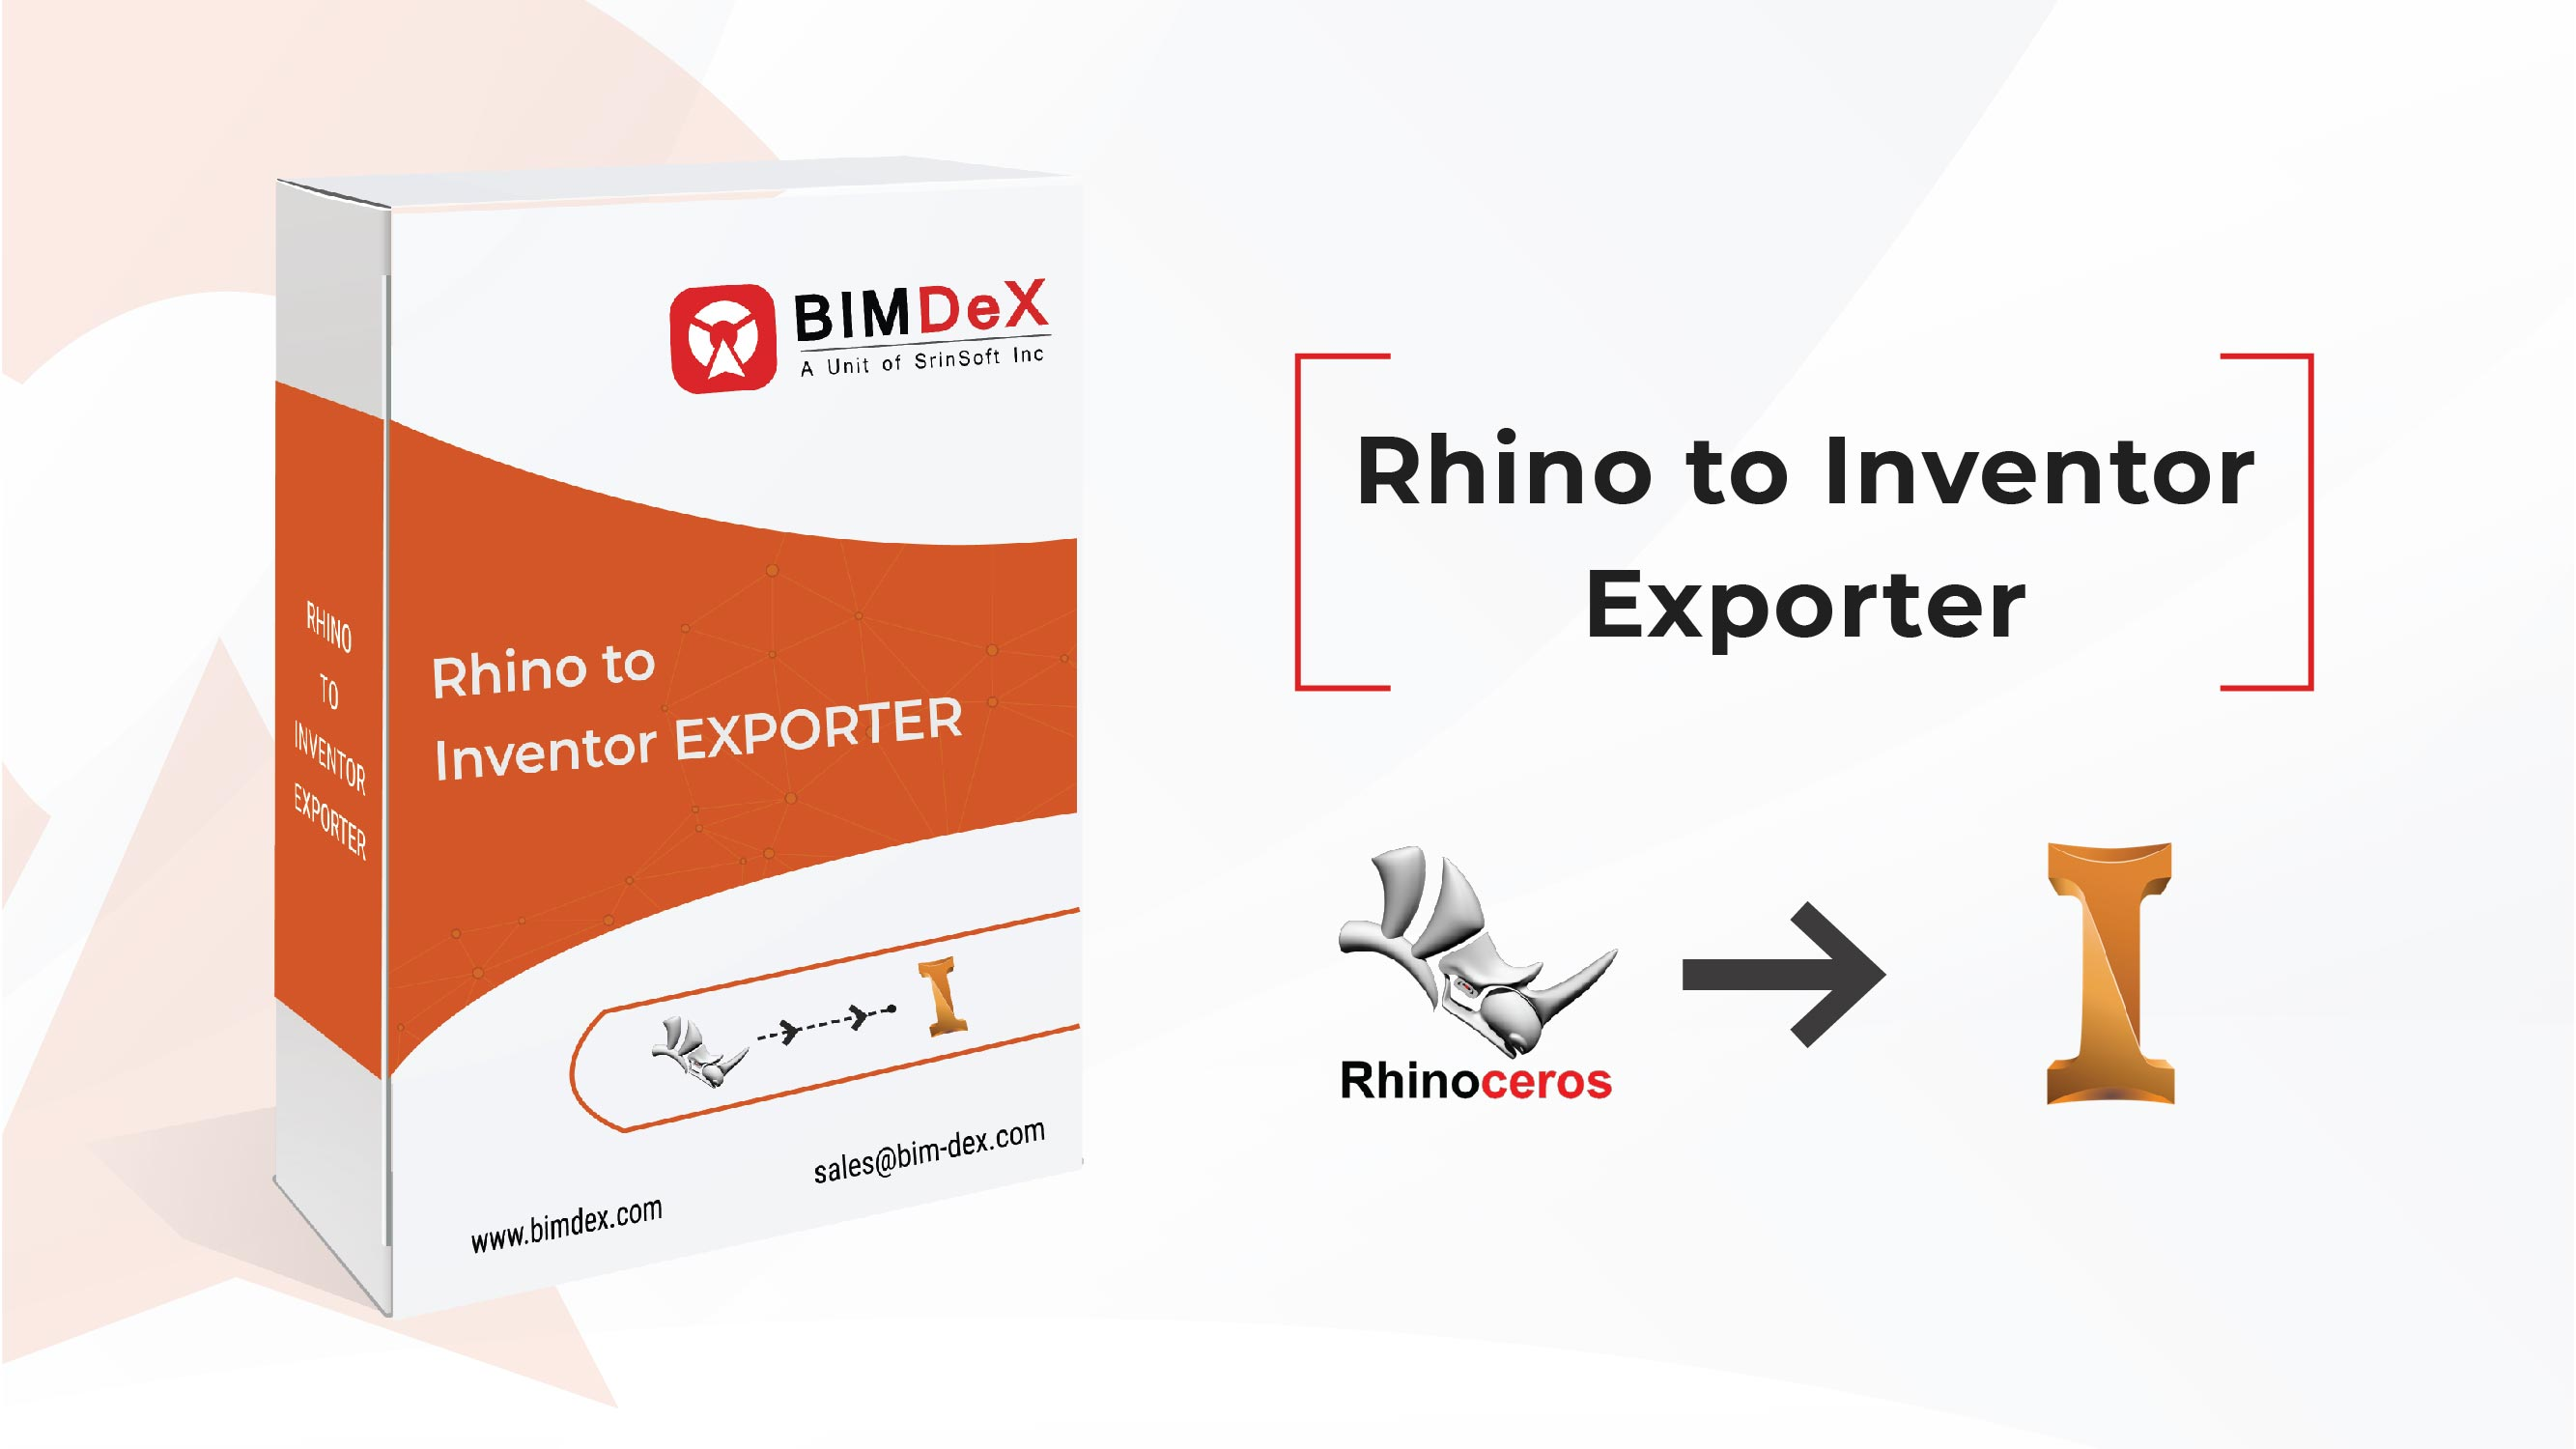 Rhino to Inventor